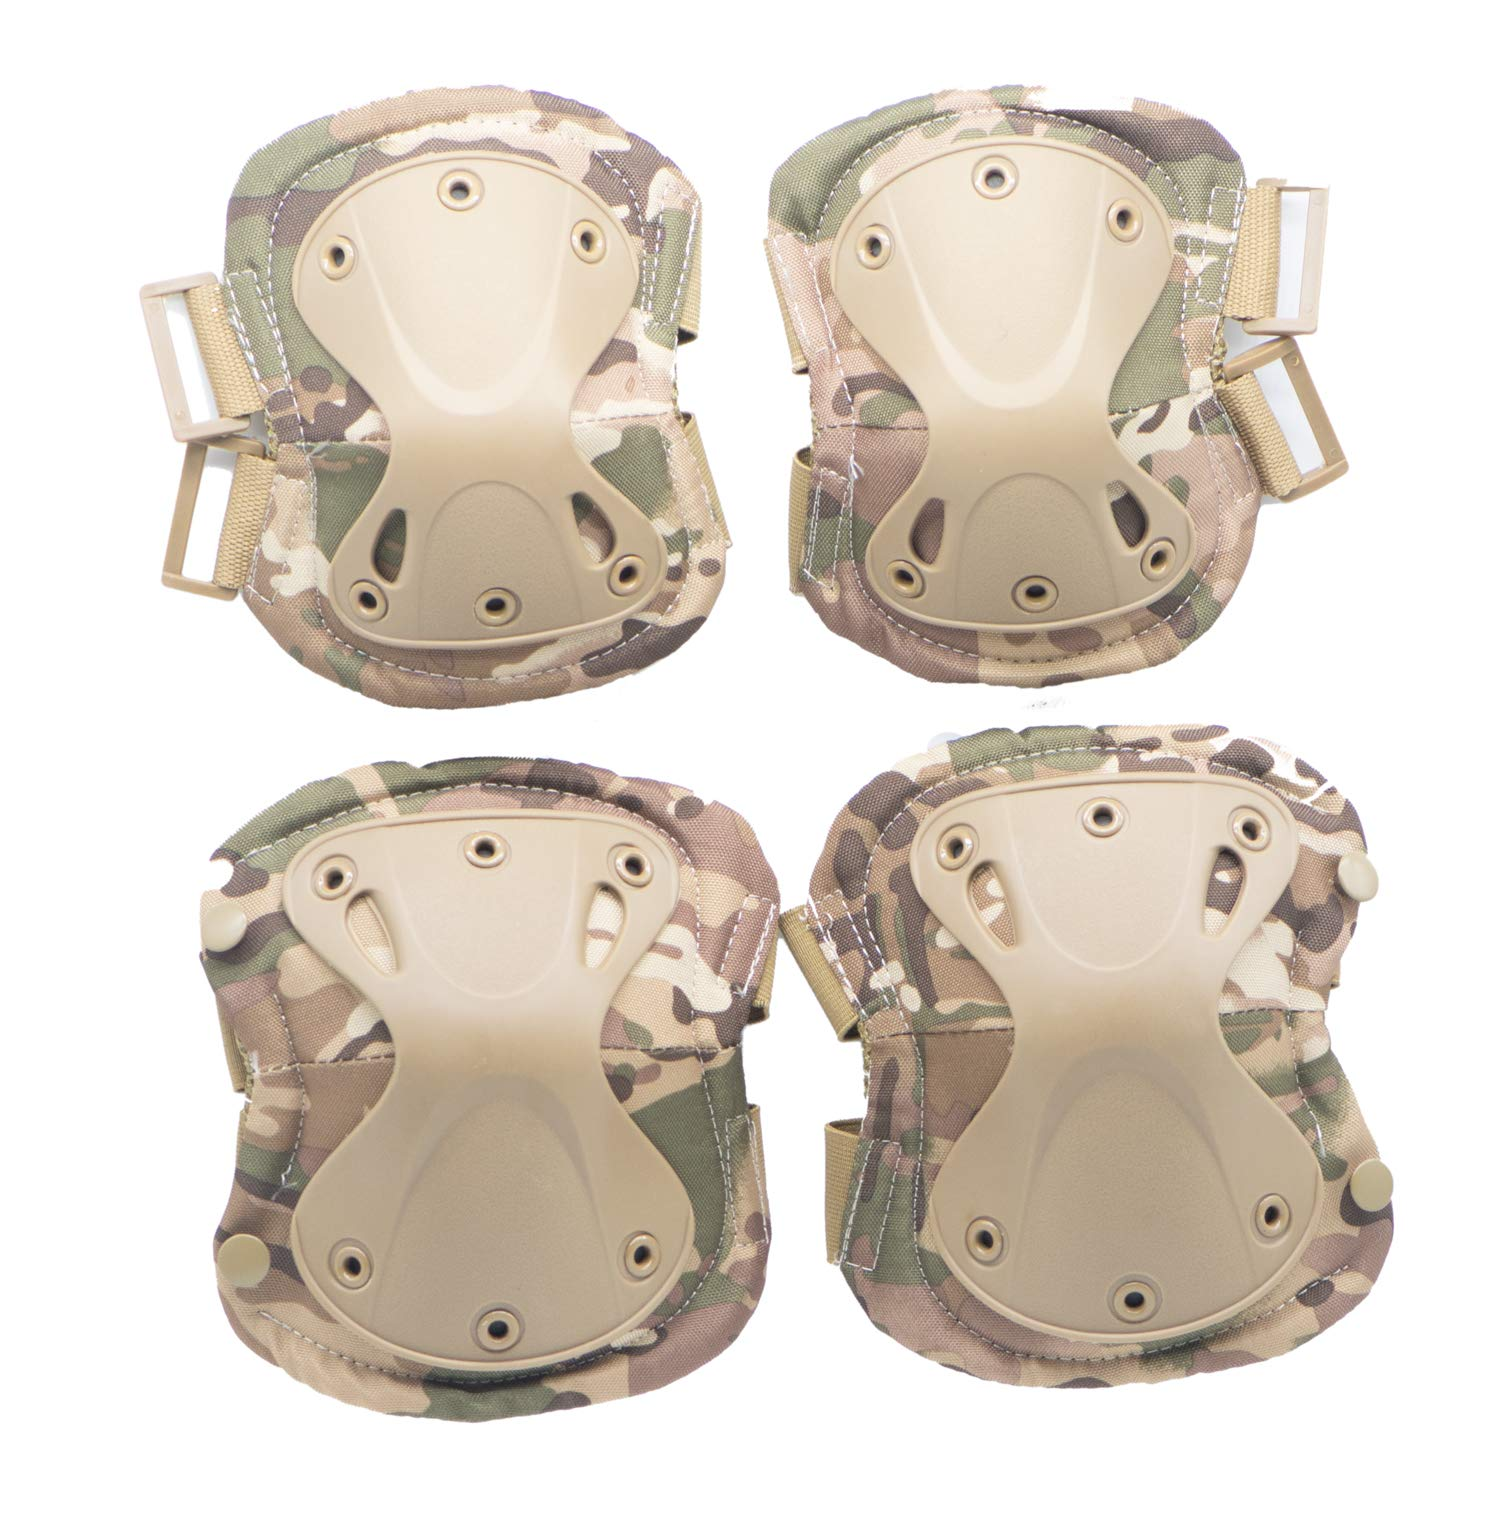 Military Tactical Multicam Knee and Elbow Pads ,Professional Skate Protective Pad Army Combat Airsoft Hunting Paintball Swat Outdoor Sports Safety Gear,Adjustable Straps Gel Cushion (Green-CP) by Aoglenic